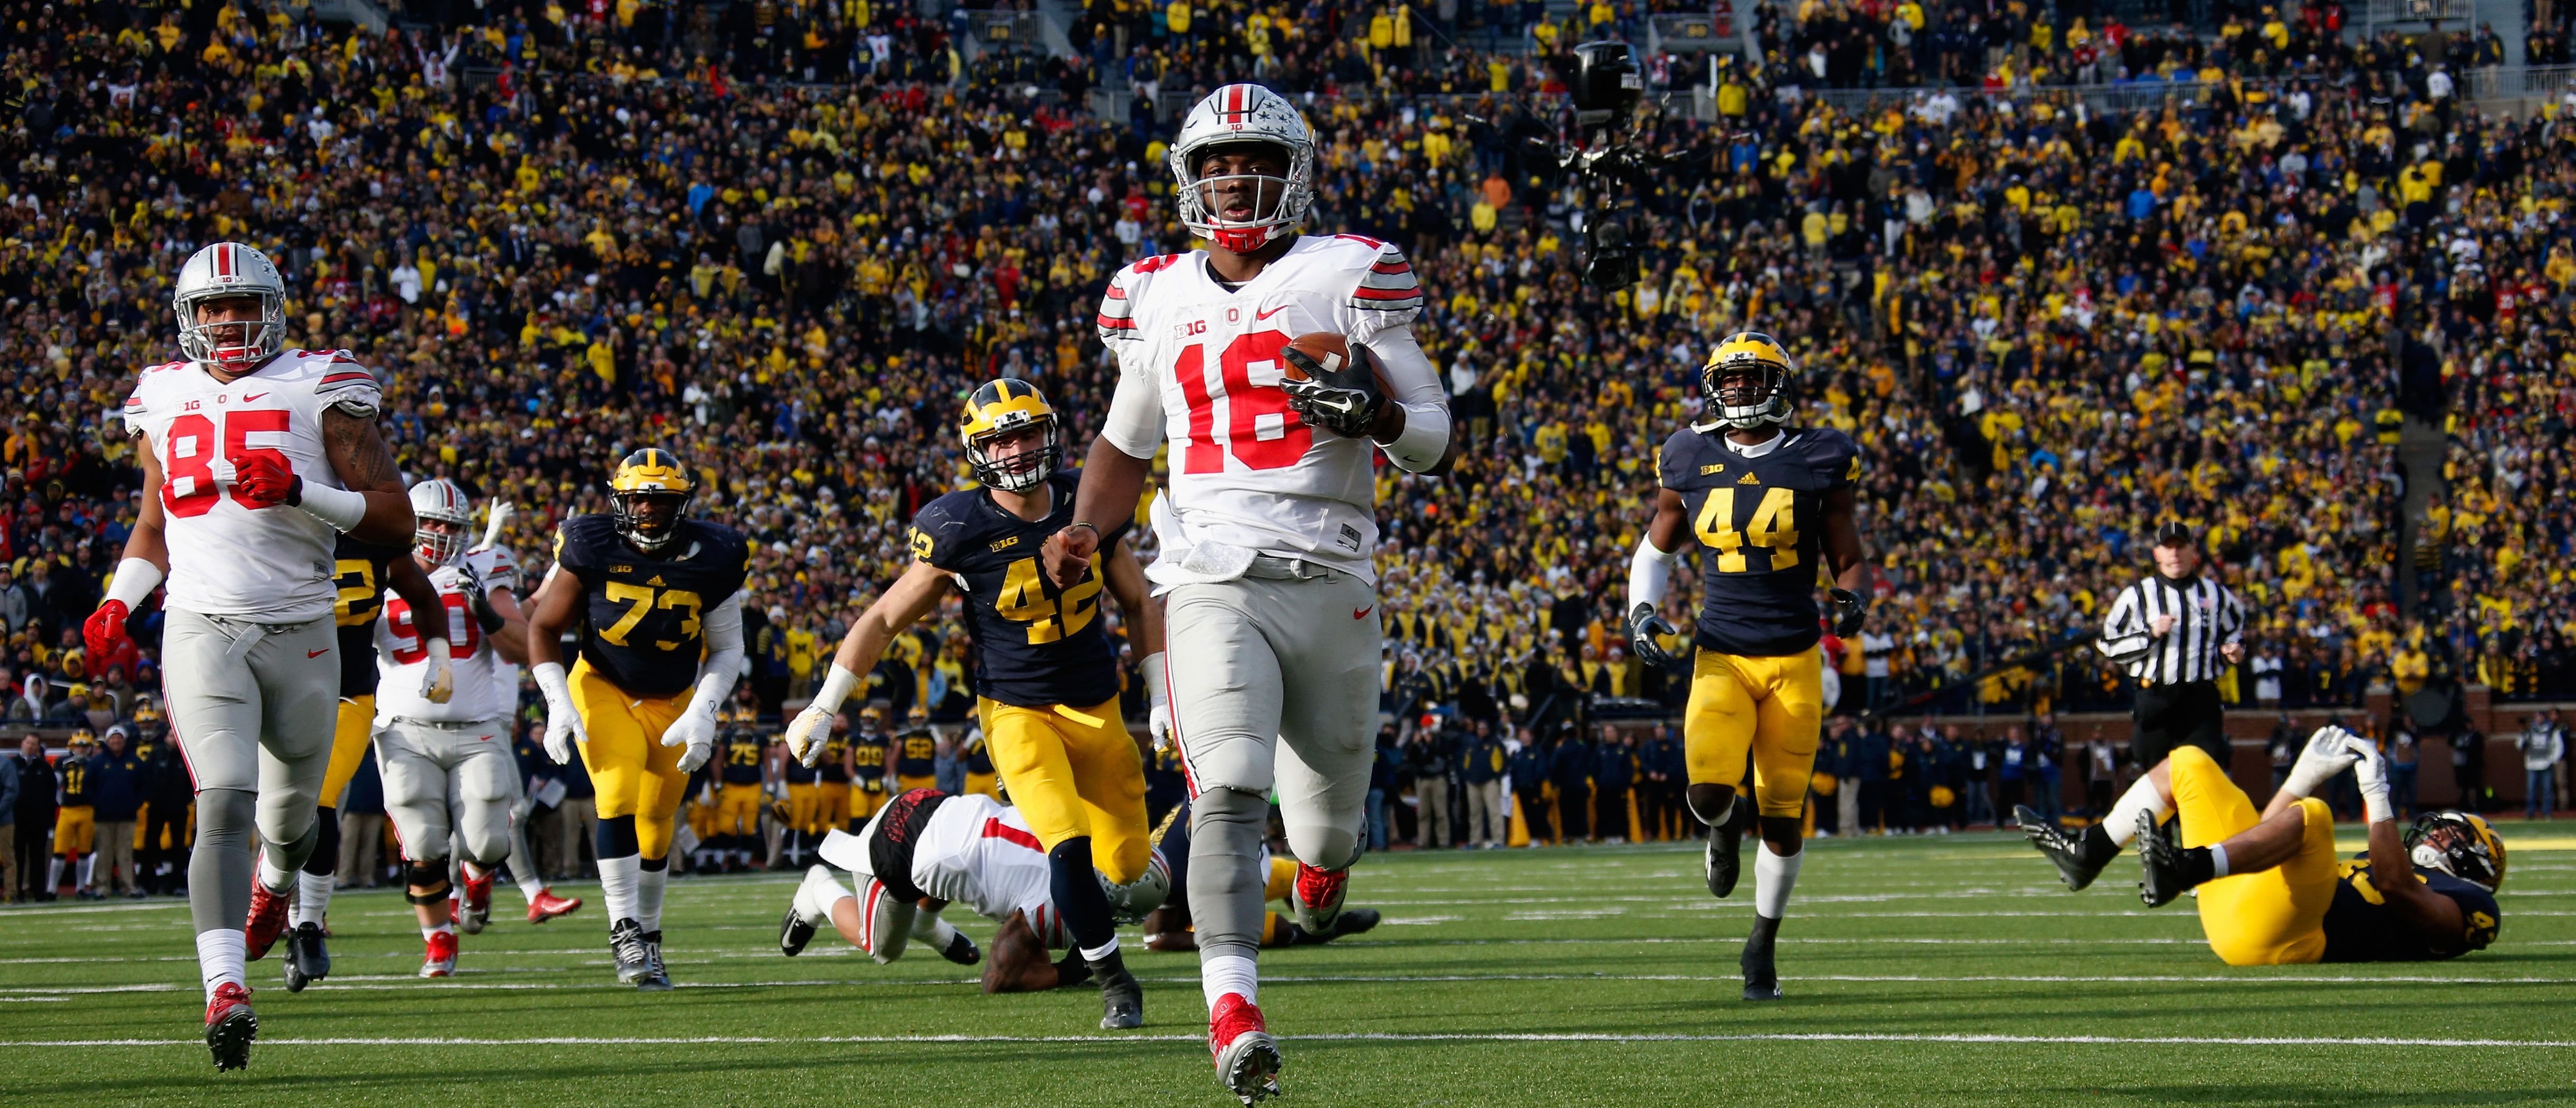 Quarterback J.T. Barrett #16 of the Ohio State Buckeyes rushes for a fourth quarter touchdown against the Michigan Wolverines at Michigan Stadium on November 28, 2015 in Ann Arbor, Michigan. (Photo by Gregory Shamus/Getty Images)